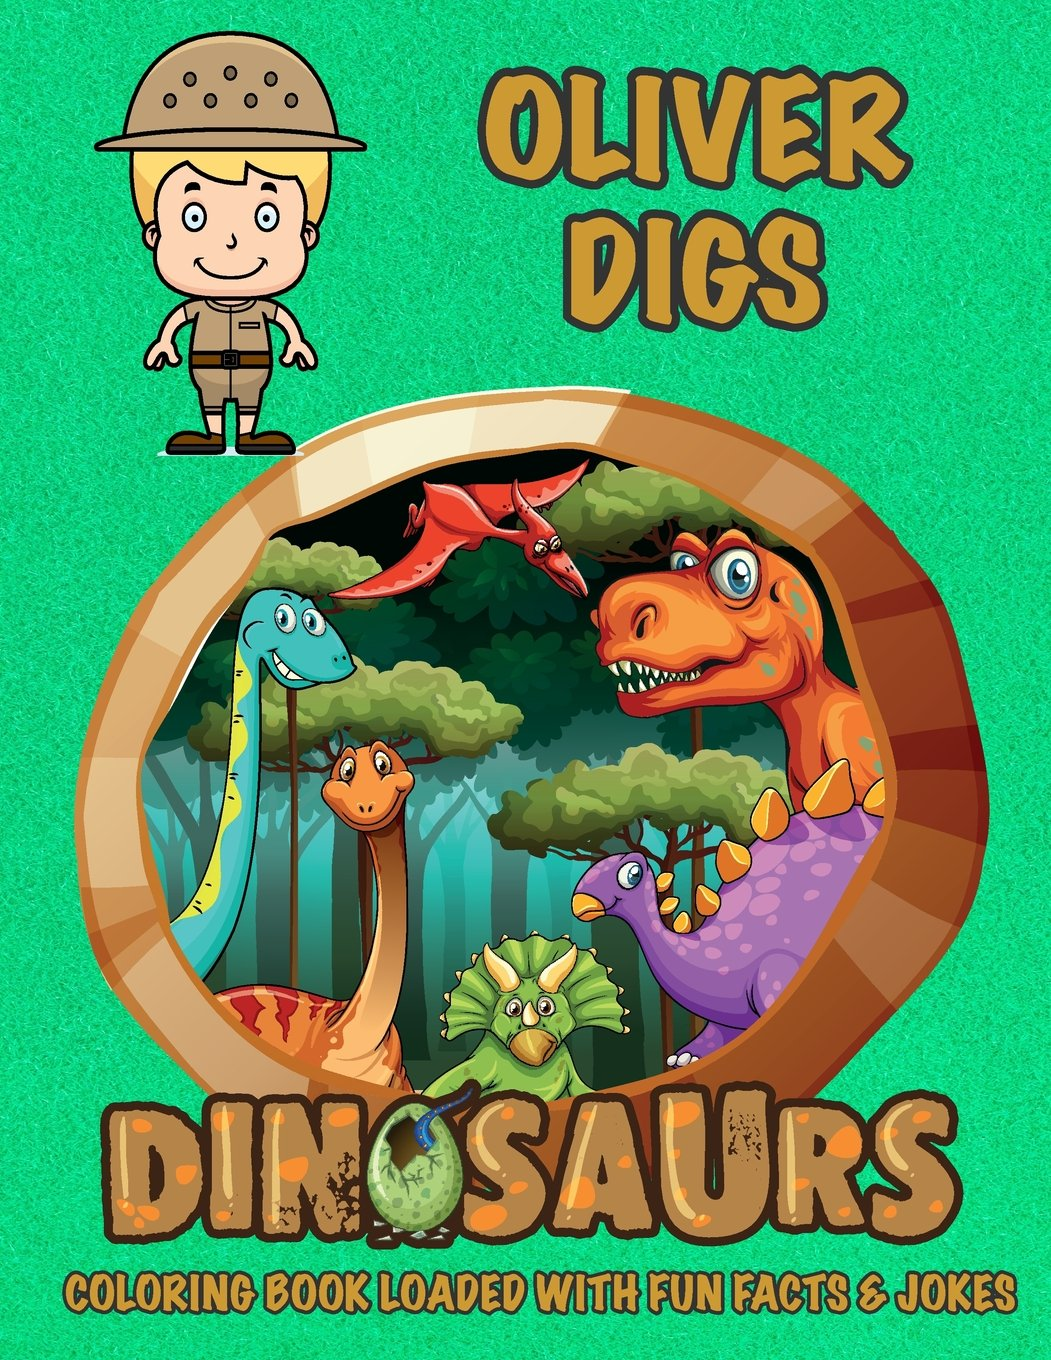 Download Oliver Digs Dinosaurs Coloring Book Loaded With Fun Facts & Jokes (Personalized Books for Children) pdf epub